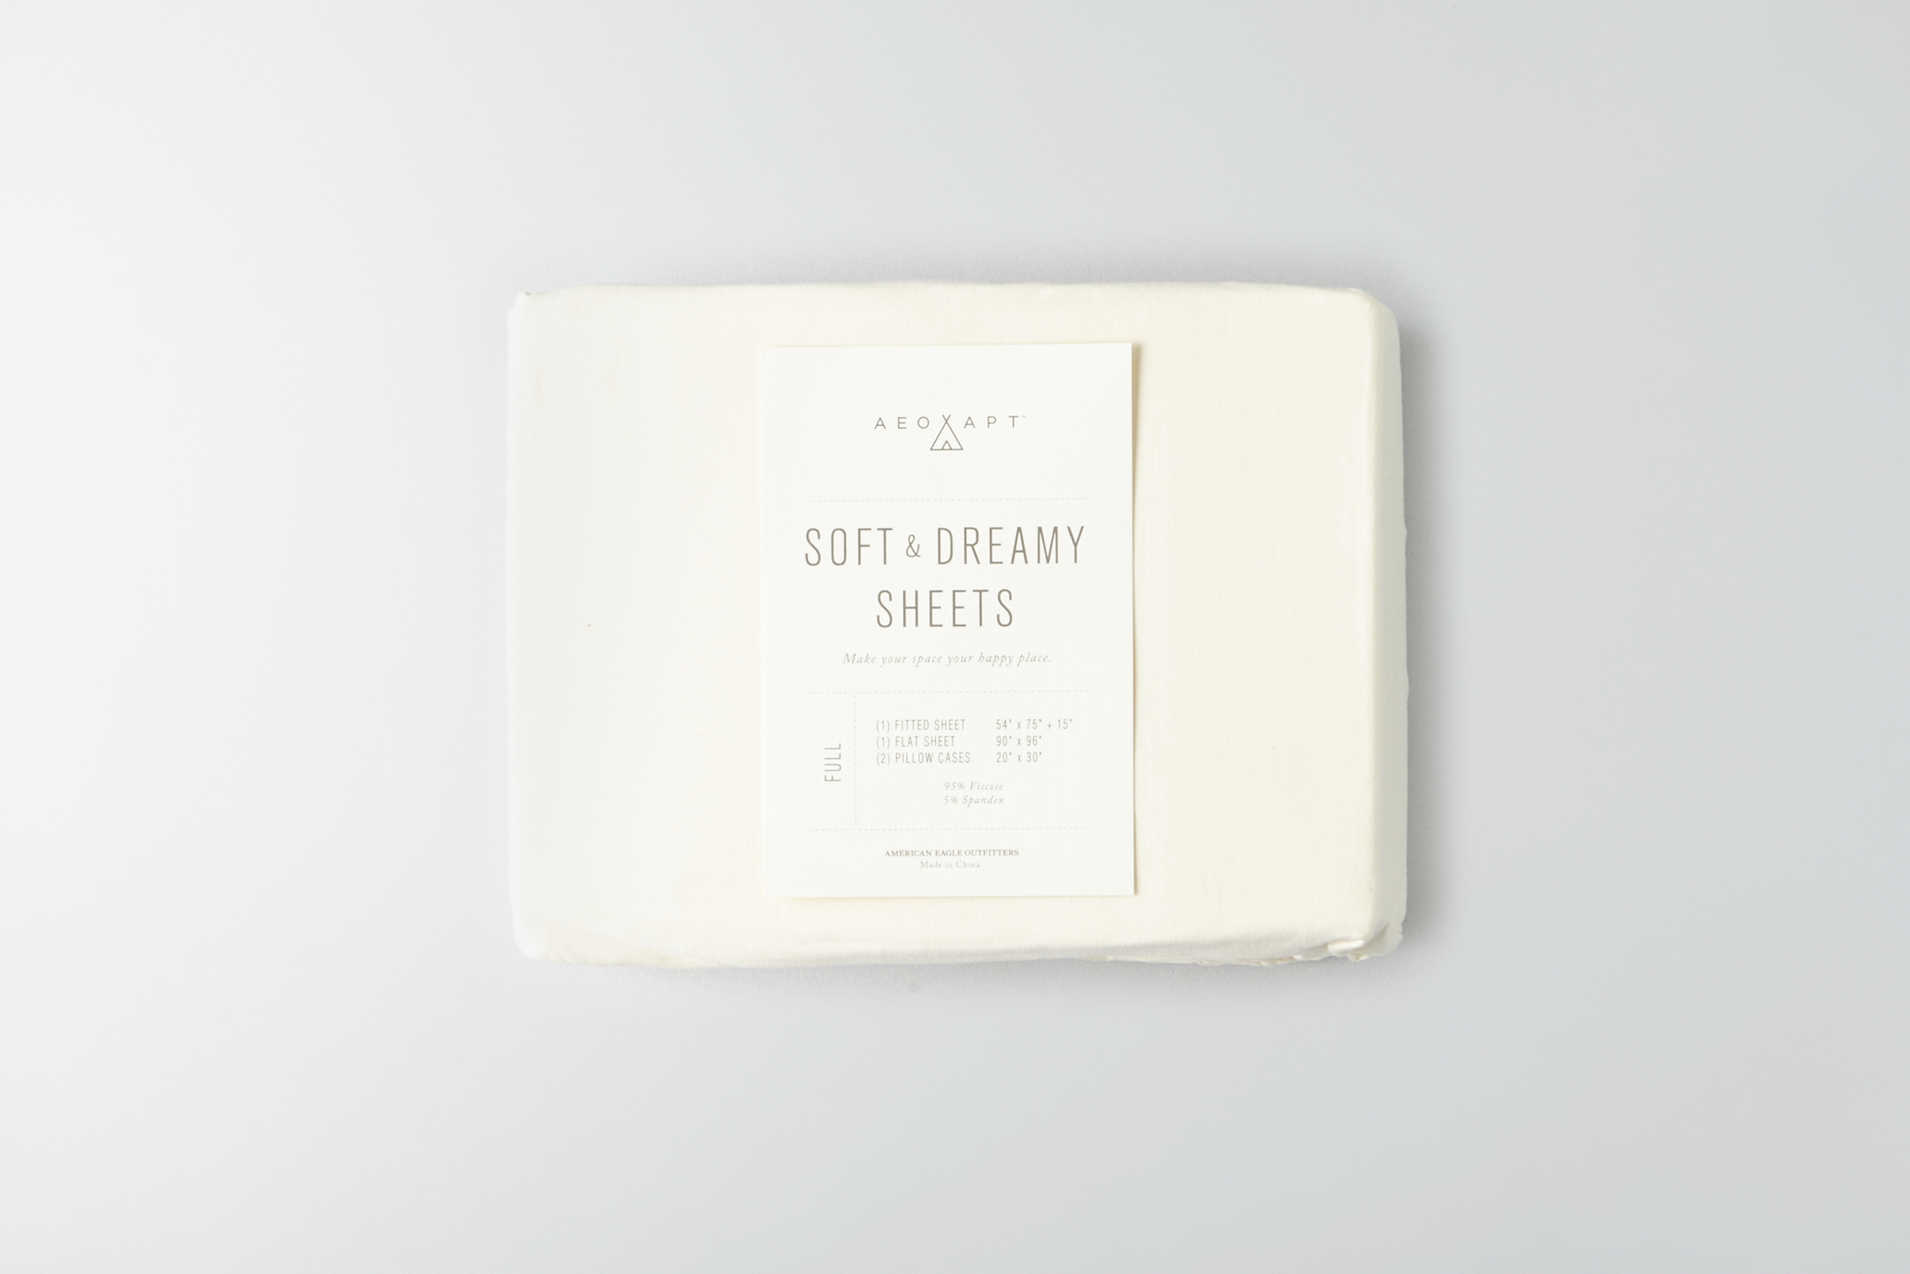 AEO APT Soft & Dreamy Full Sheet Set